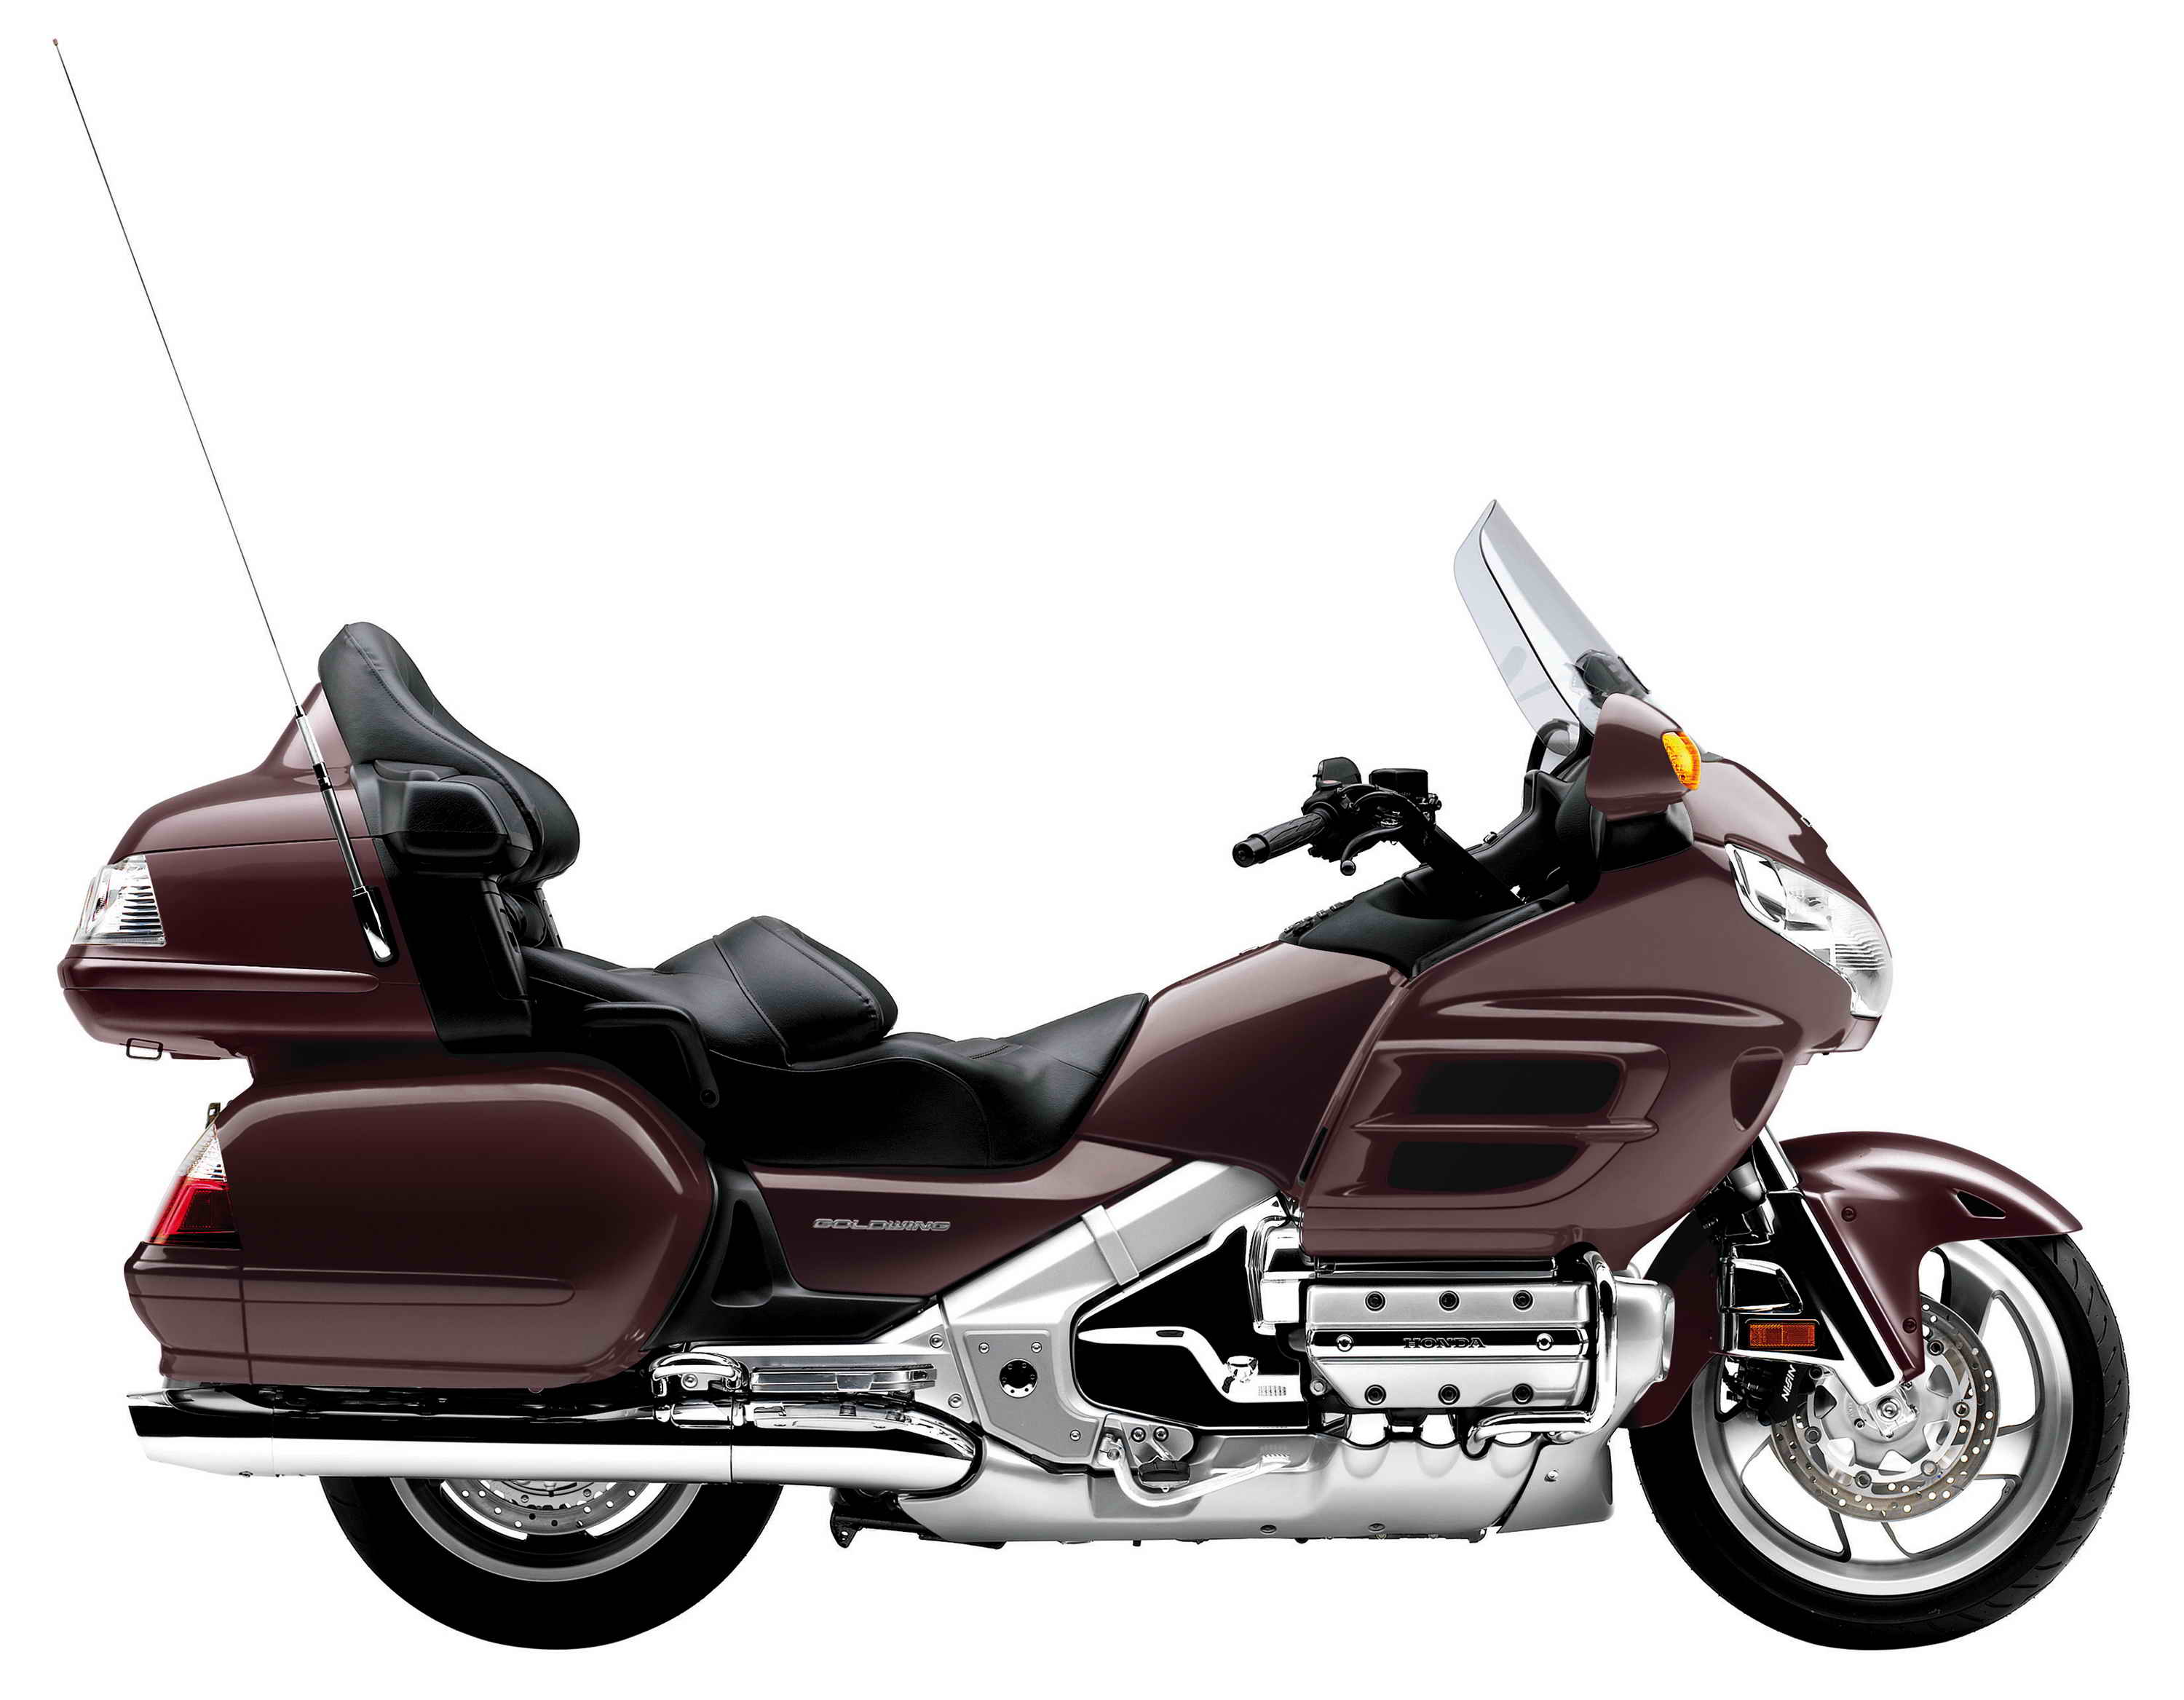 2008 honda gold wing review top speed. Black Bedroom Furniture Sets. Home Design Ideas